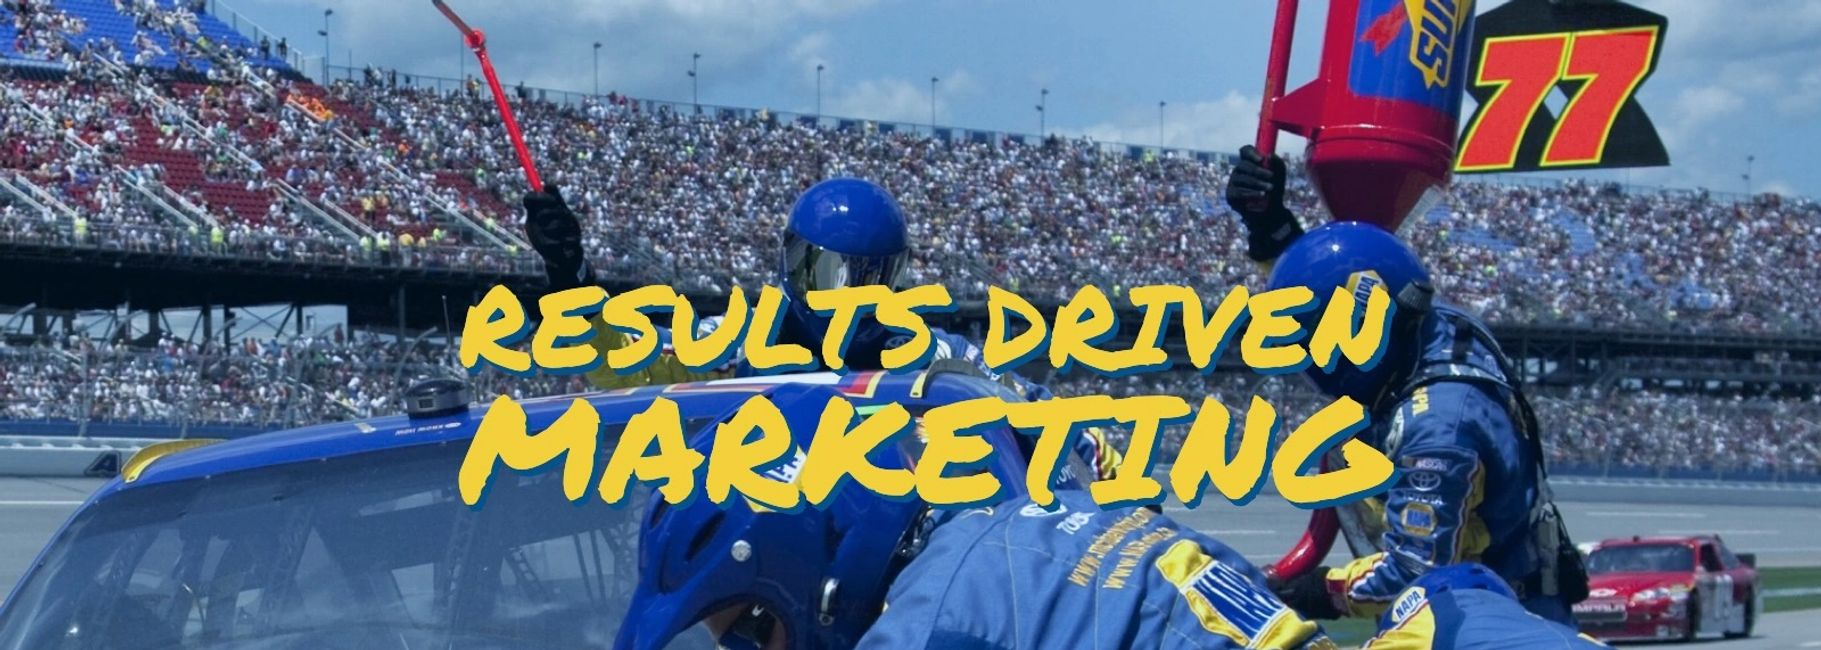 "graphic for spectrum marketing that shows the tag line ""results driven marketing""."